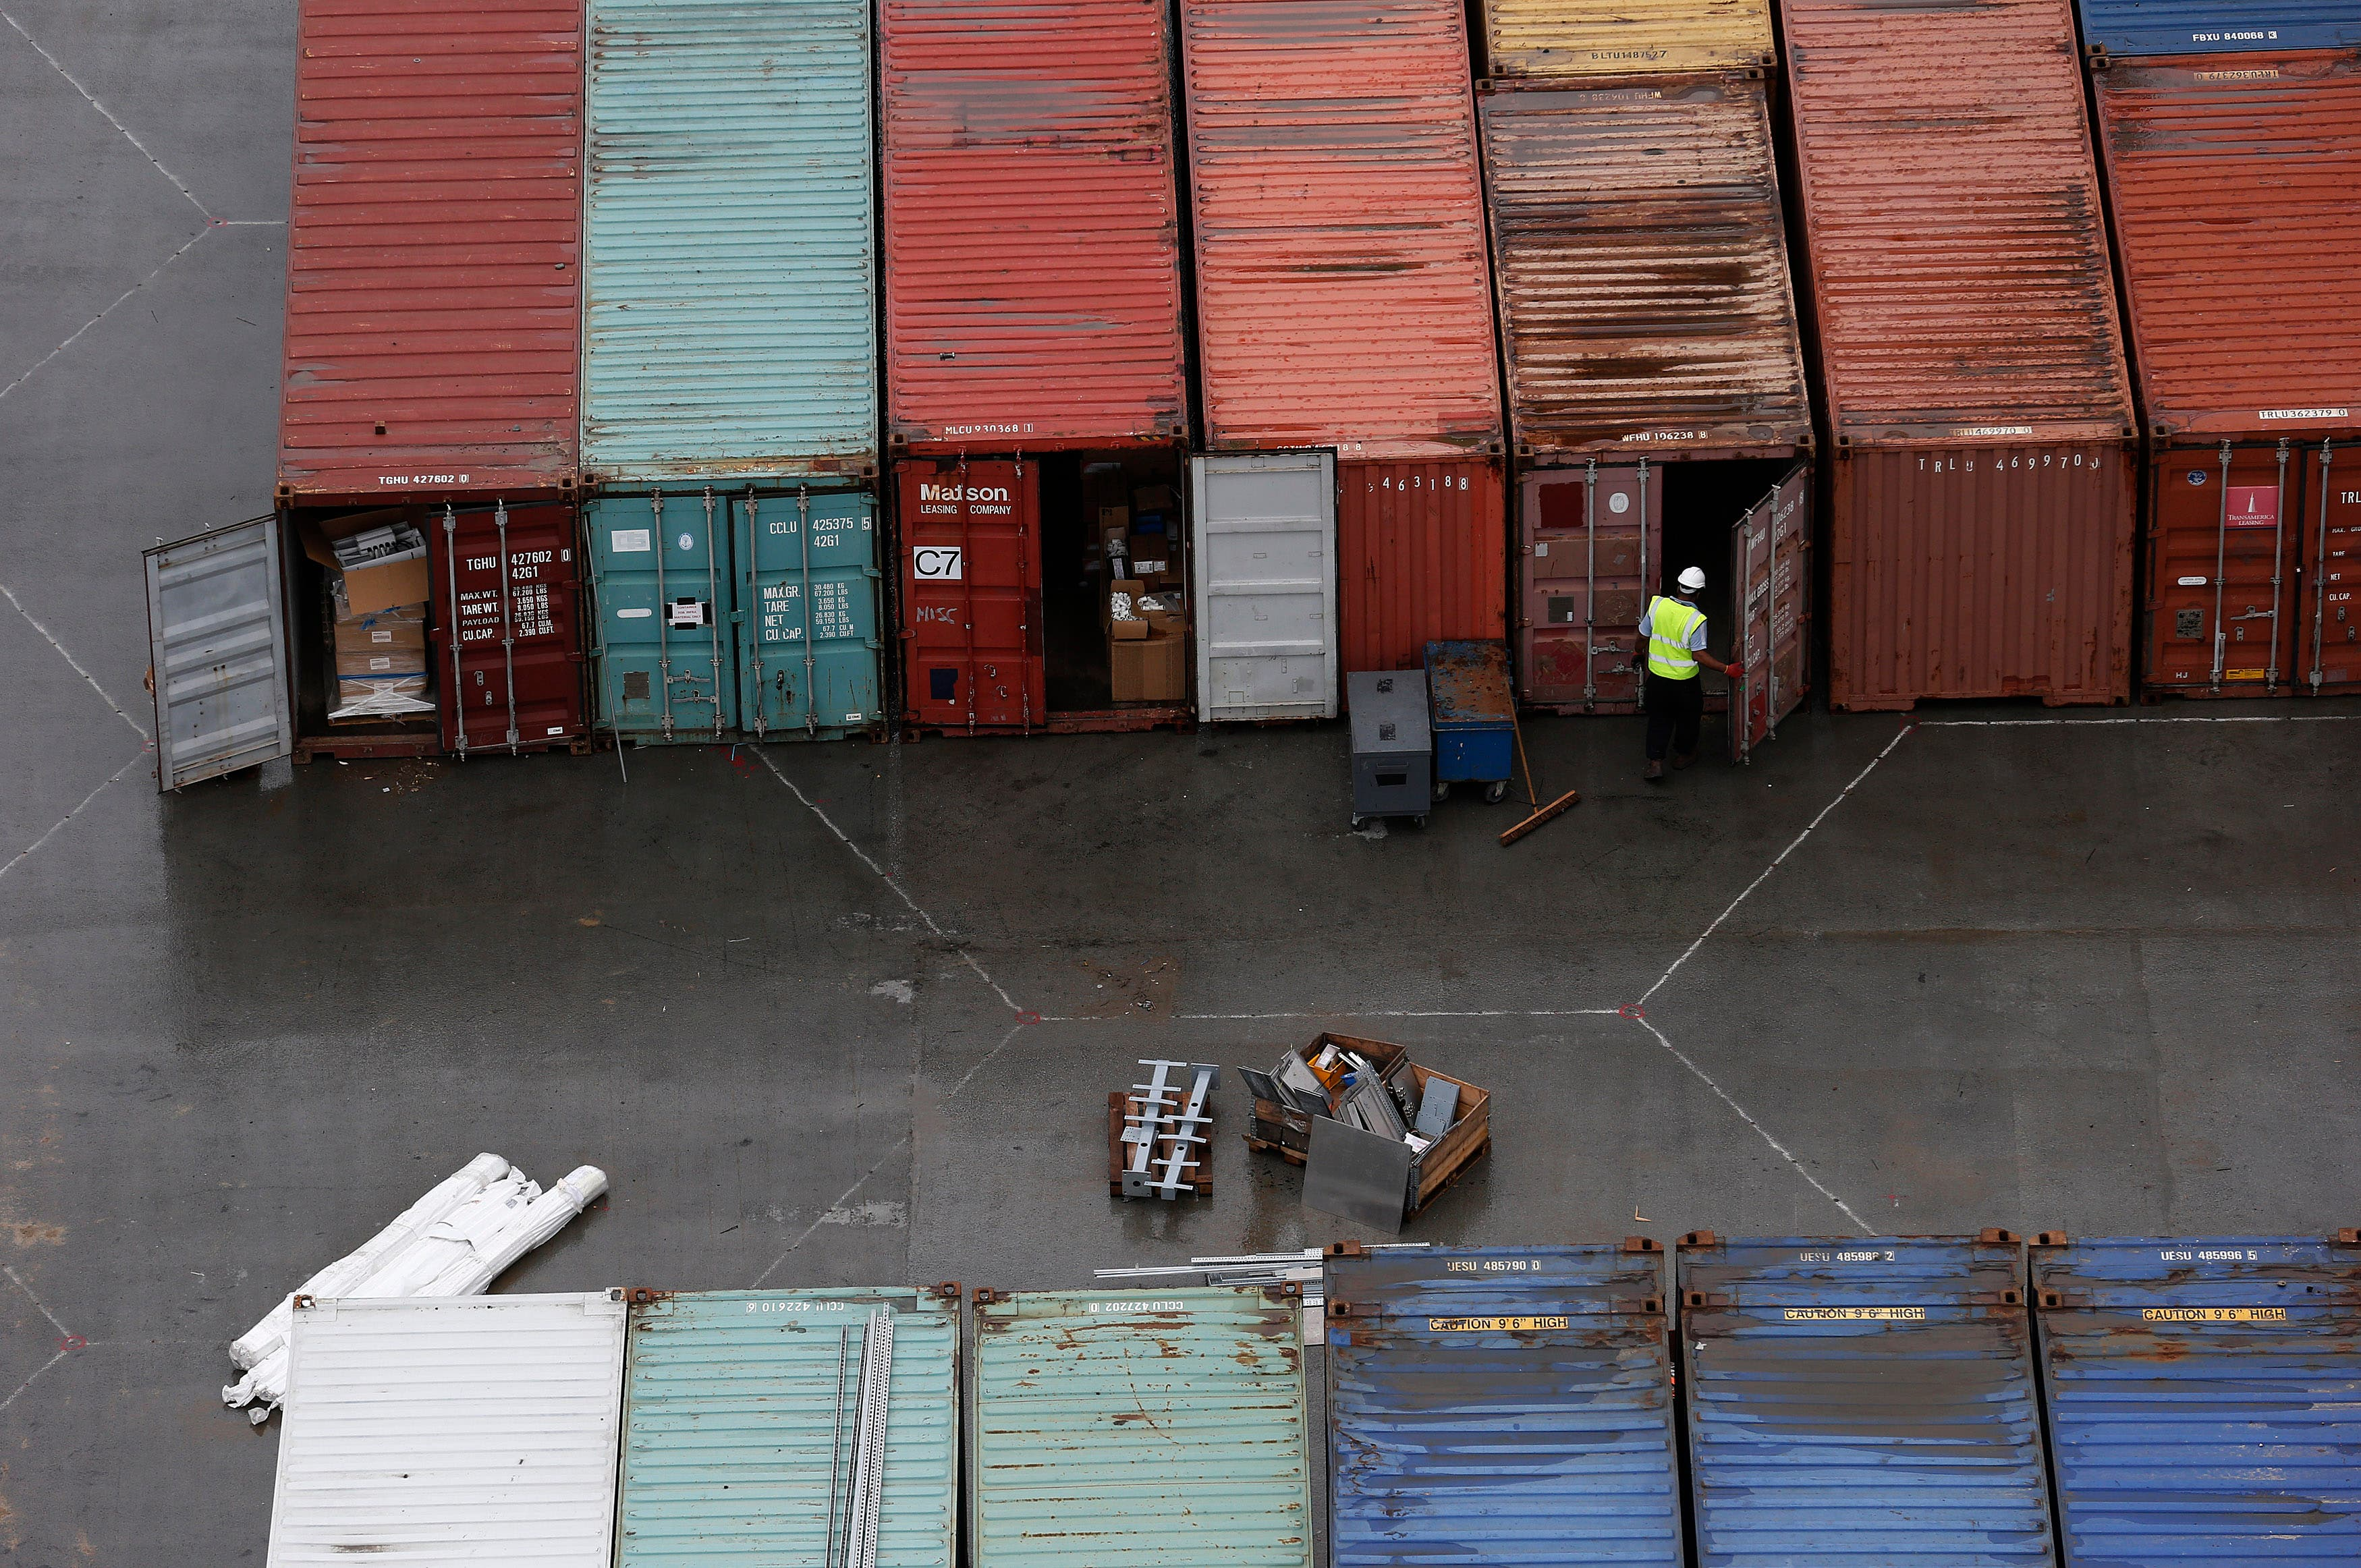 A worker opens the door of a container at DP World London Gateway container port in July, 2013. (File photo: Reuters)